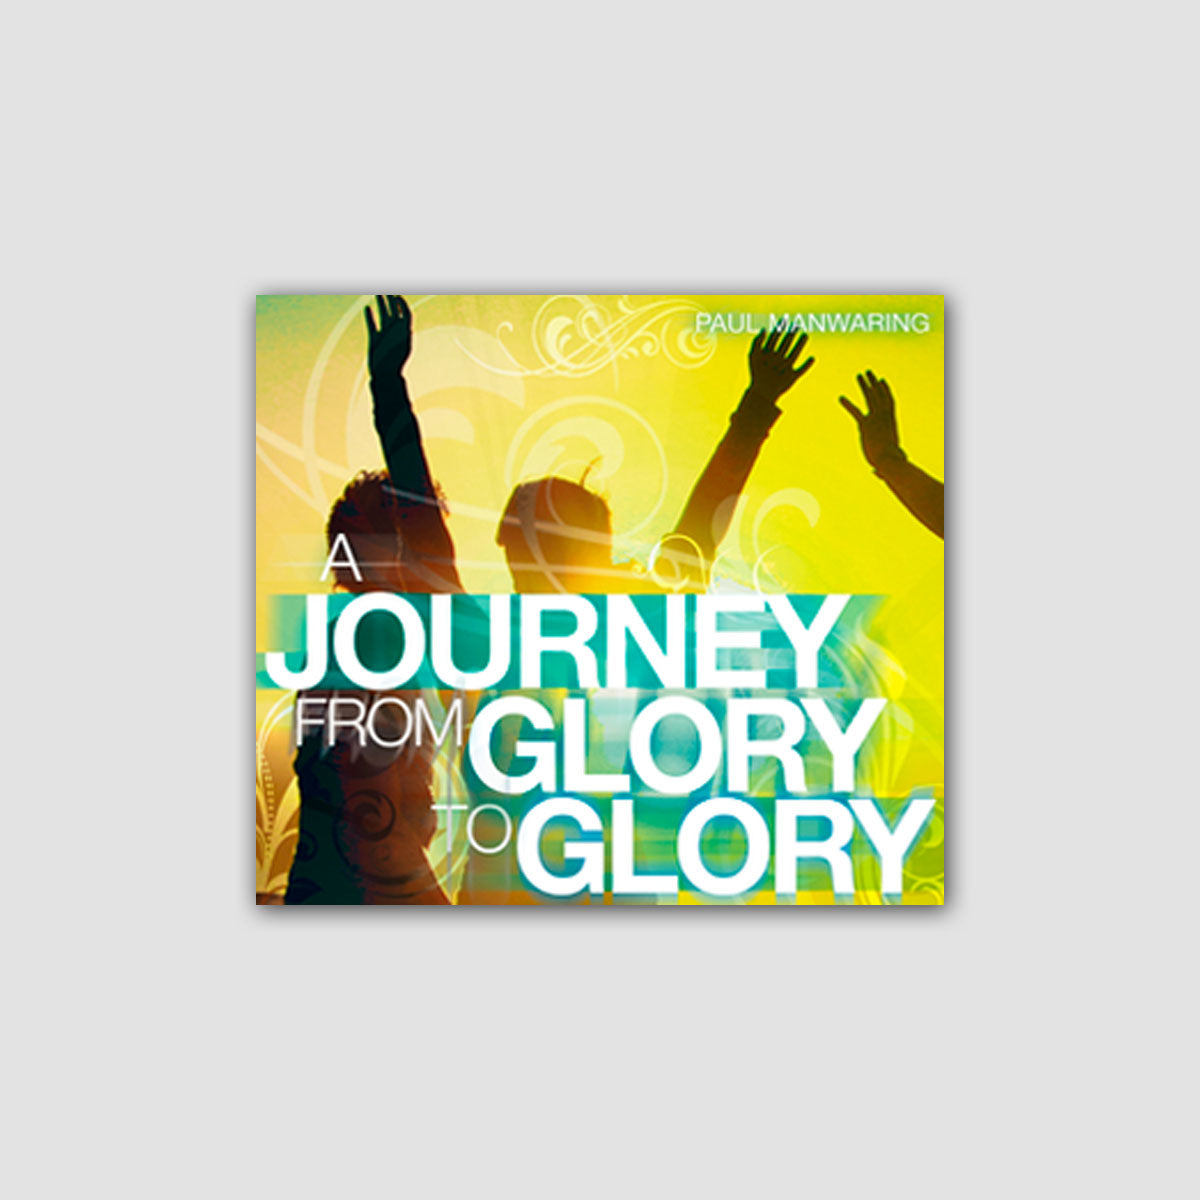 A Journey from Glory to Glory